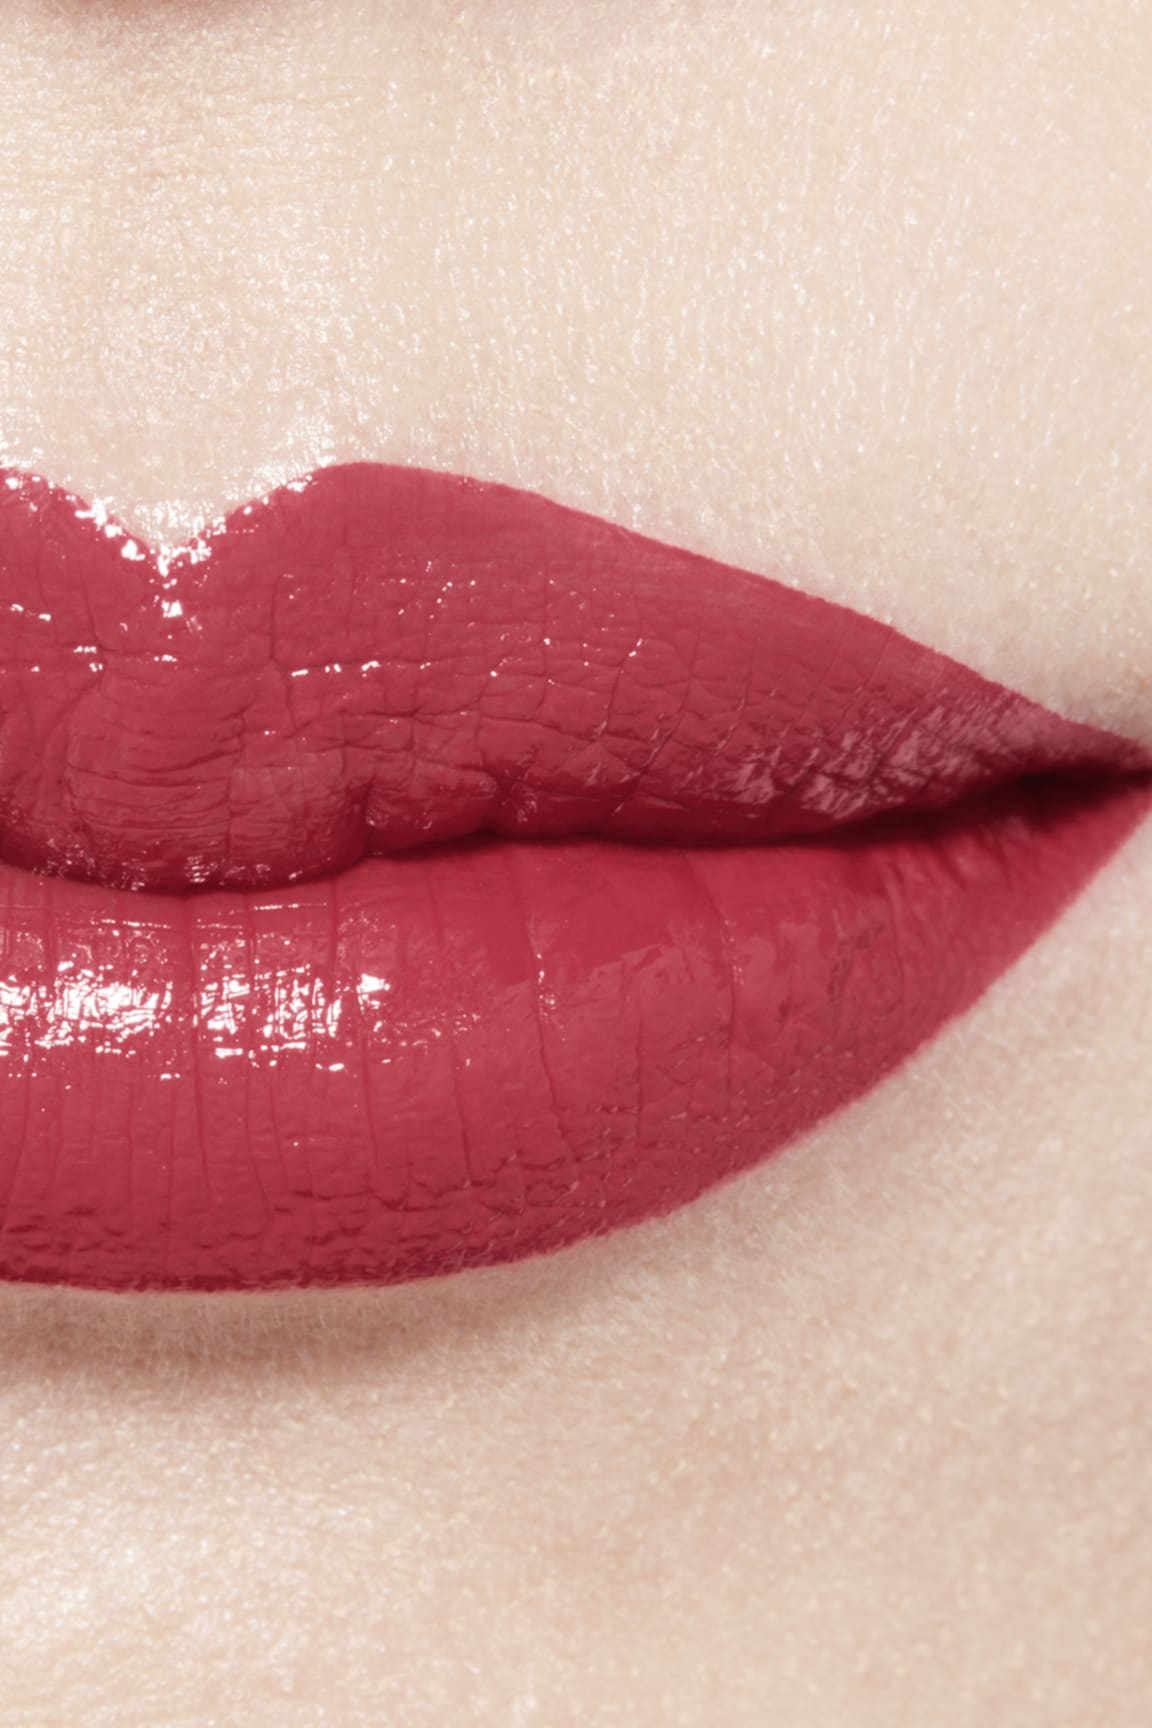 Application makeup visual 1 - ROUGE COCO BLOOM 124 - MERVEILLE